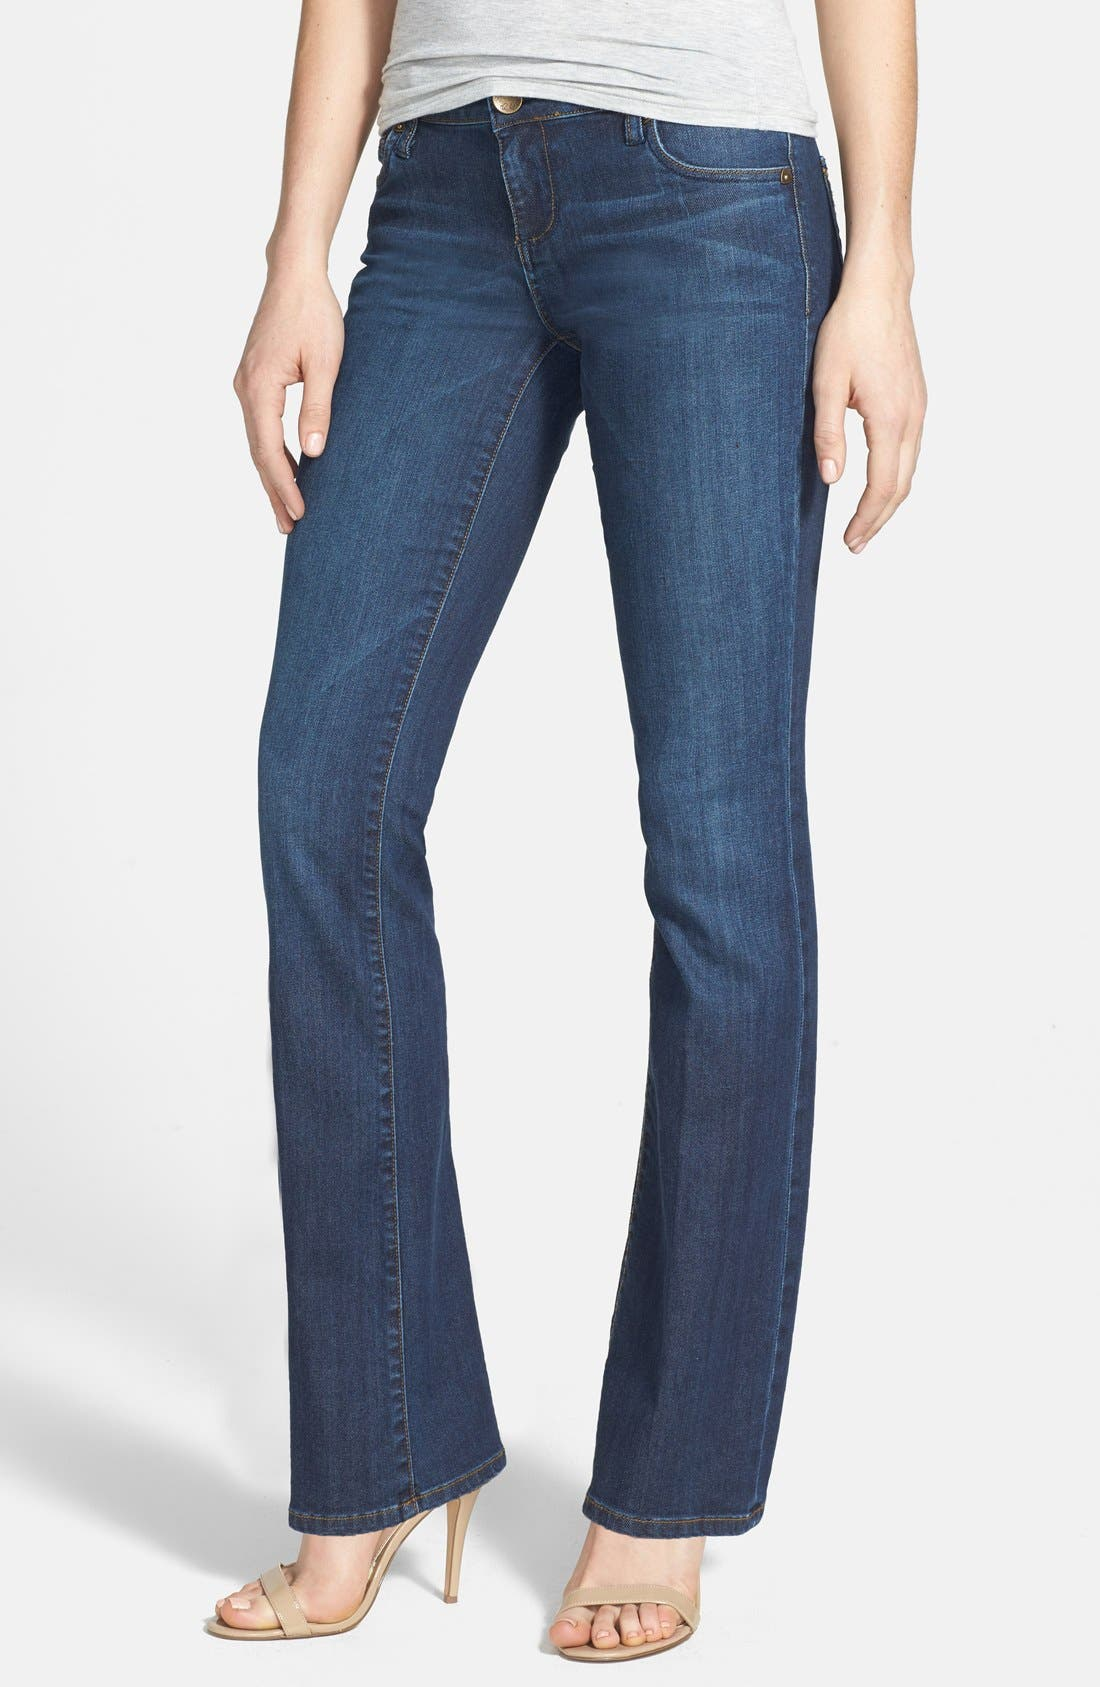 Main Image - KUT from the Kloth 'Farrah' Baby Bootcut Jeans (Whim) (Short)